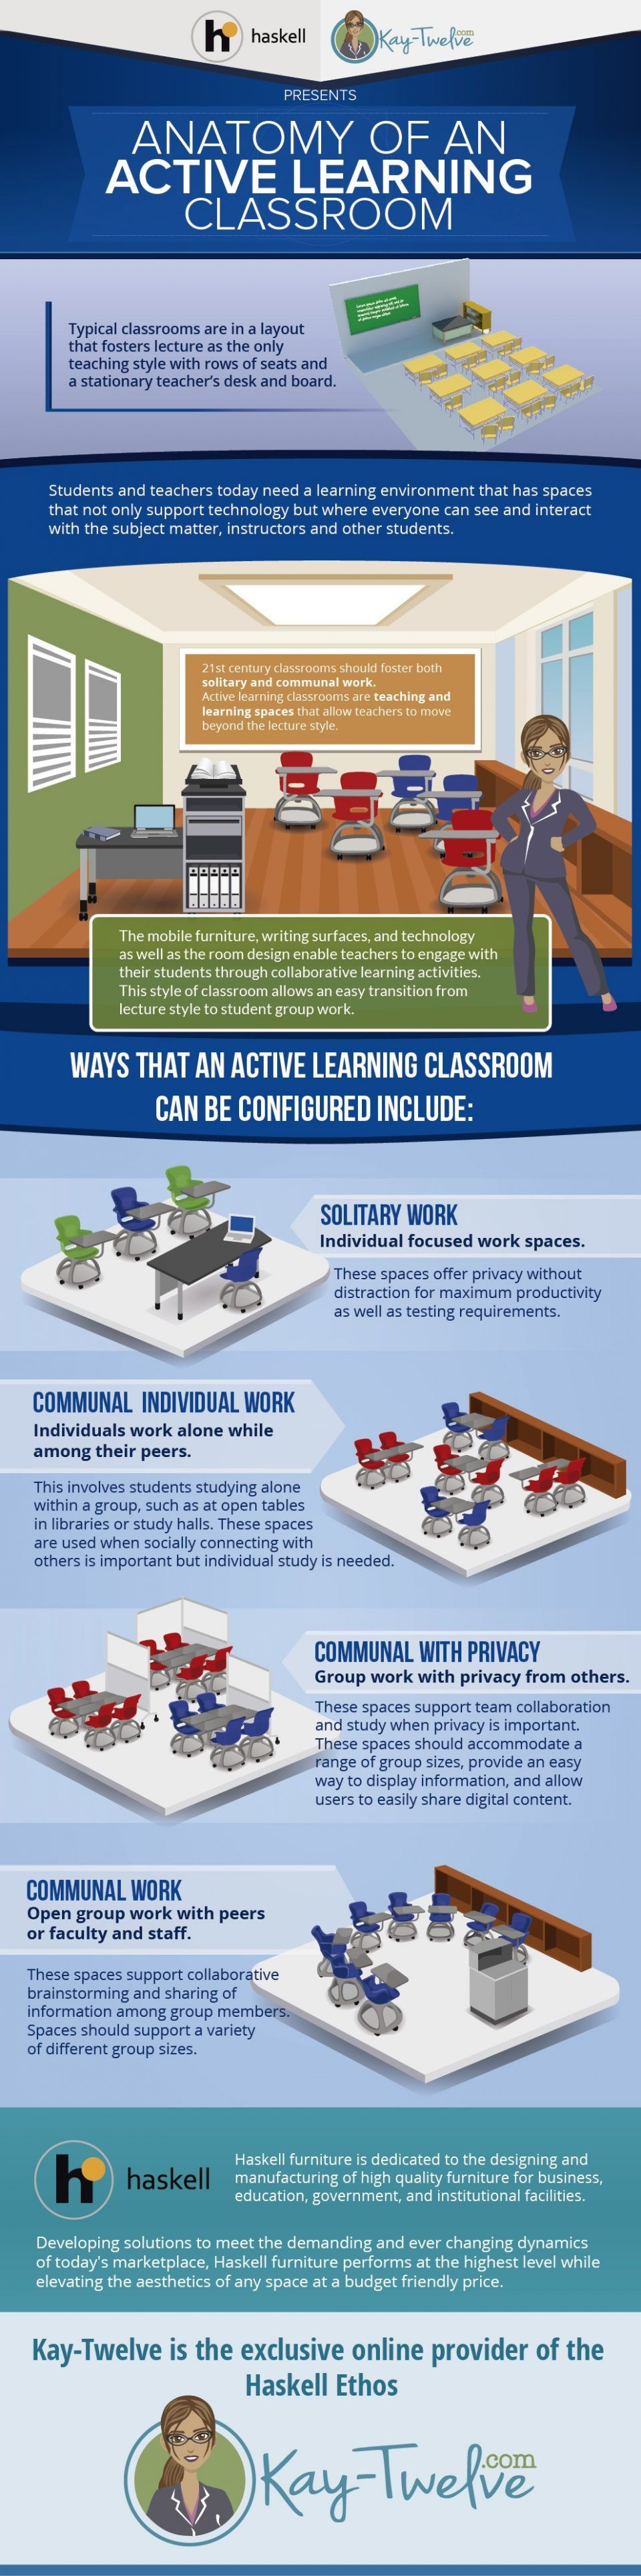 Anatomy of an Active Learning Classroom Infographic